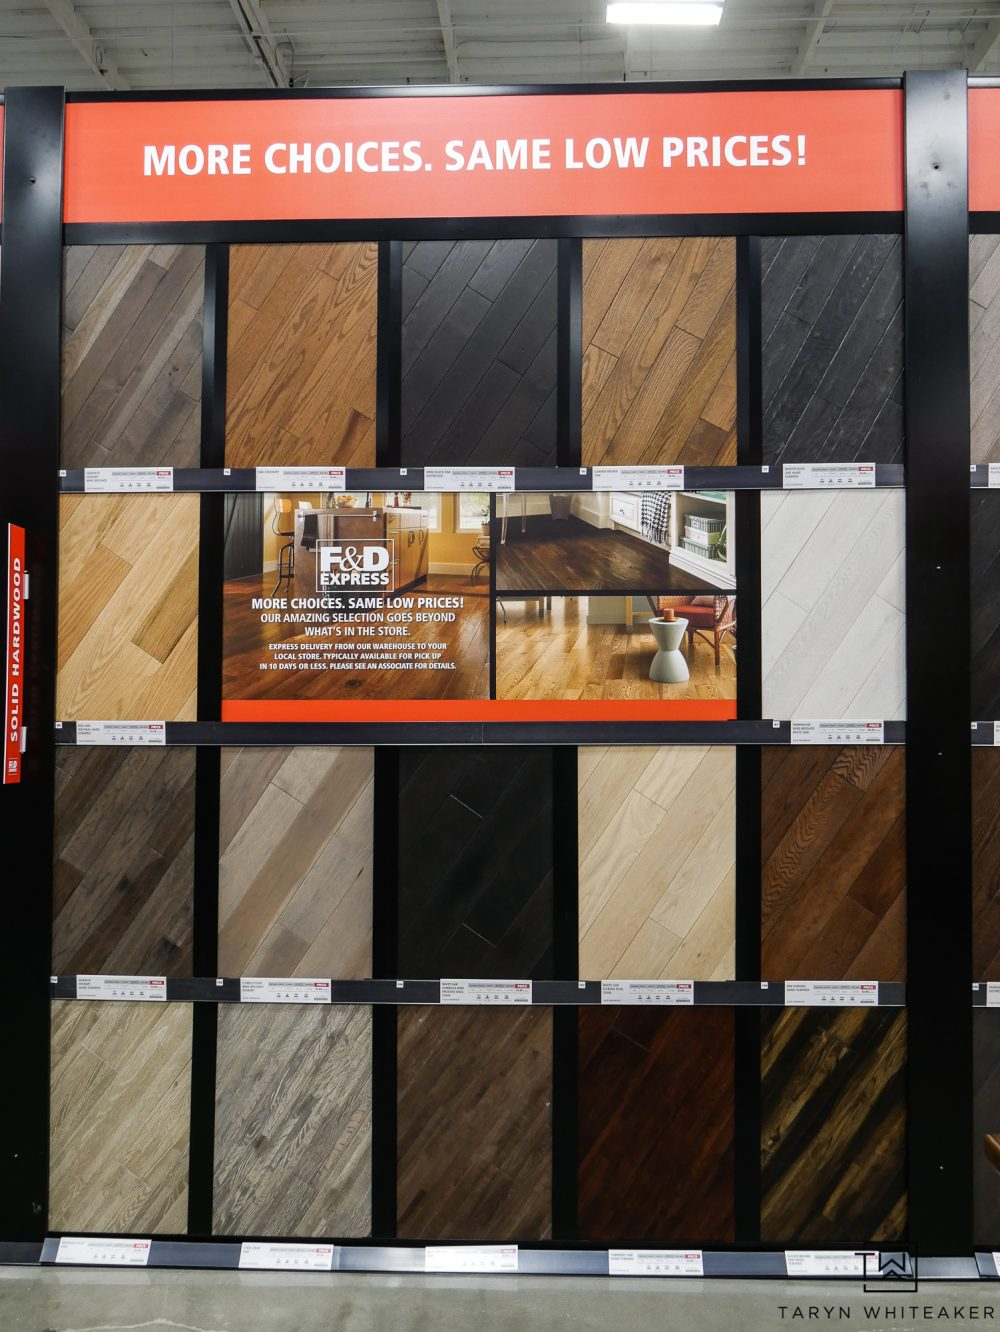 If You Are Looking For A Specific Wood Tone They Probably Have It From Every Shade Of Gray White Washed Natural Dark Espresso And Black